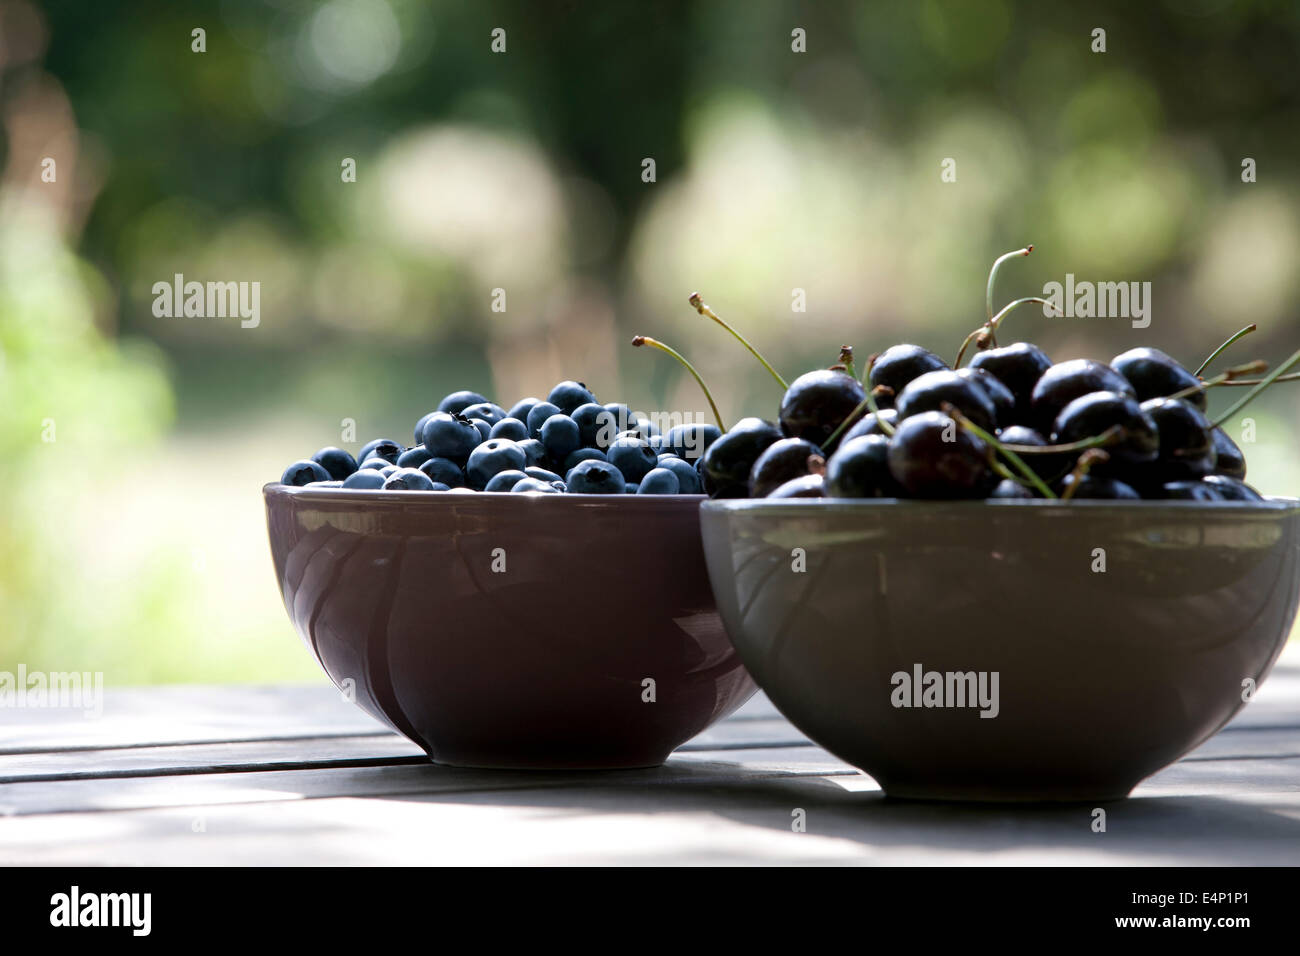 Black cherries and blueberries in ceramic bowls - Stock Image